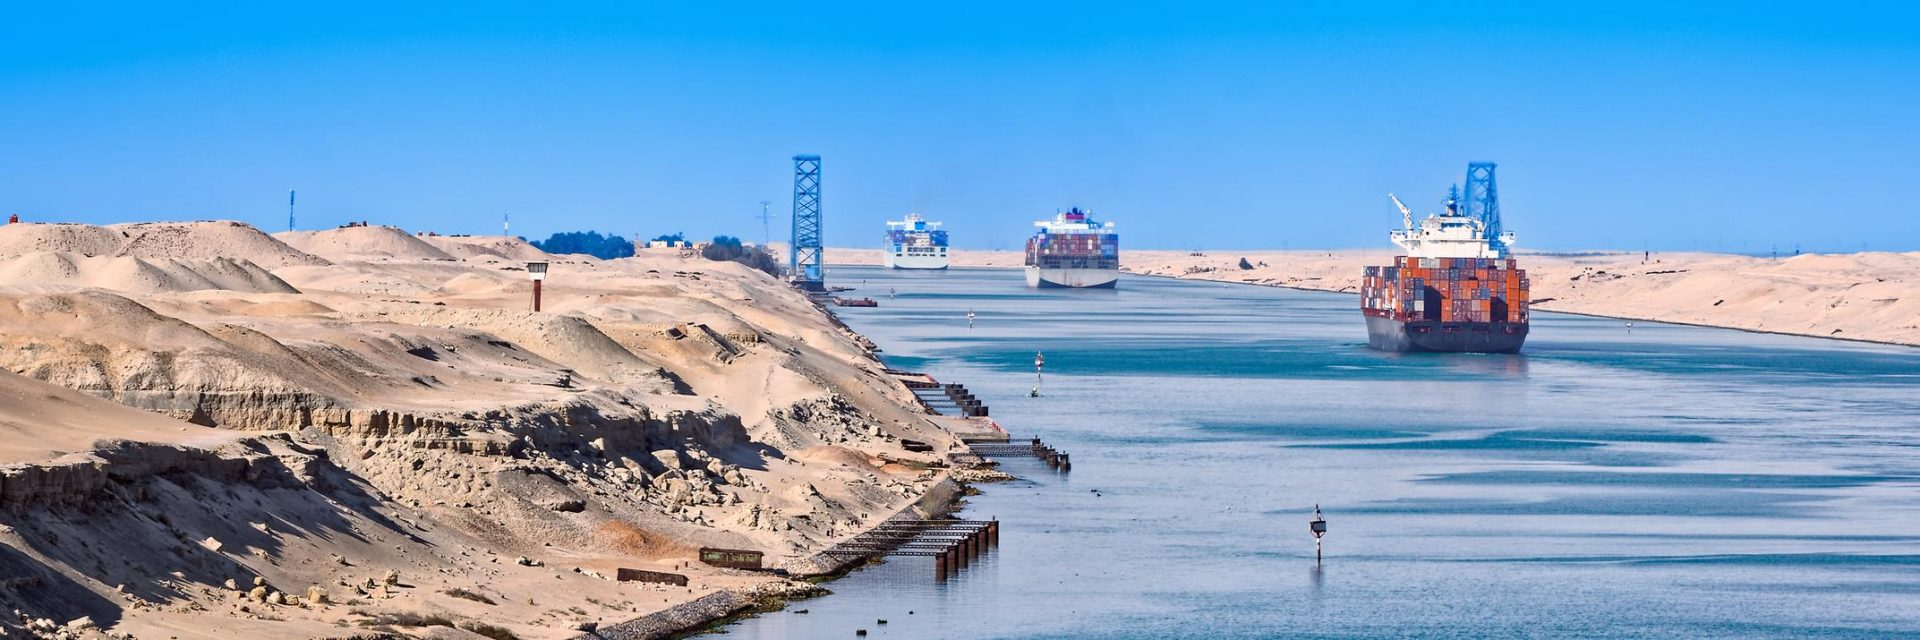 """suez canal its impact on global The suez canal is """"one of the most significant pathways of marine invasions  globally,"""" says the international union for the conservation of nature  what was  considered to be a full study of its potential ecological impact."""